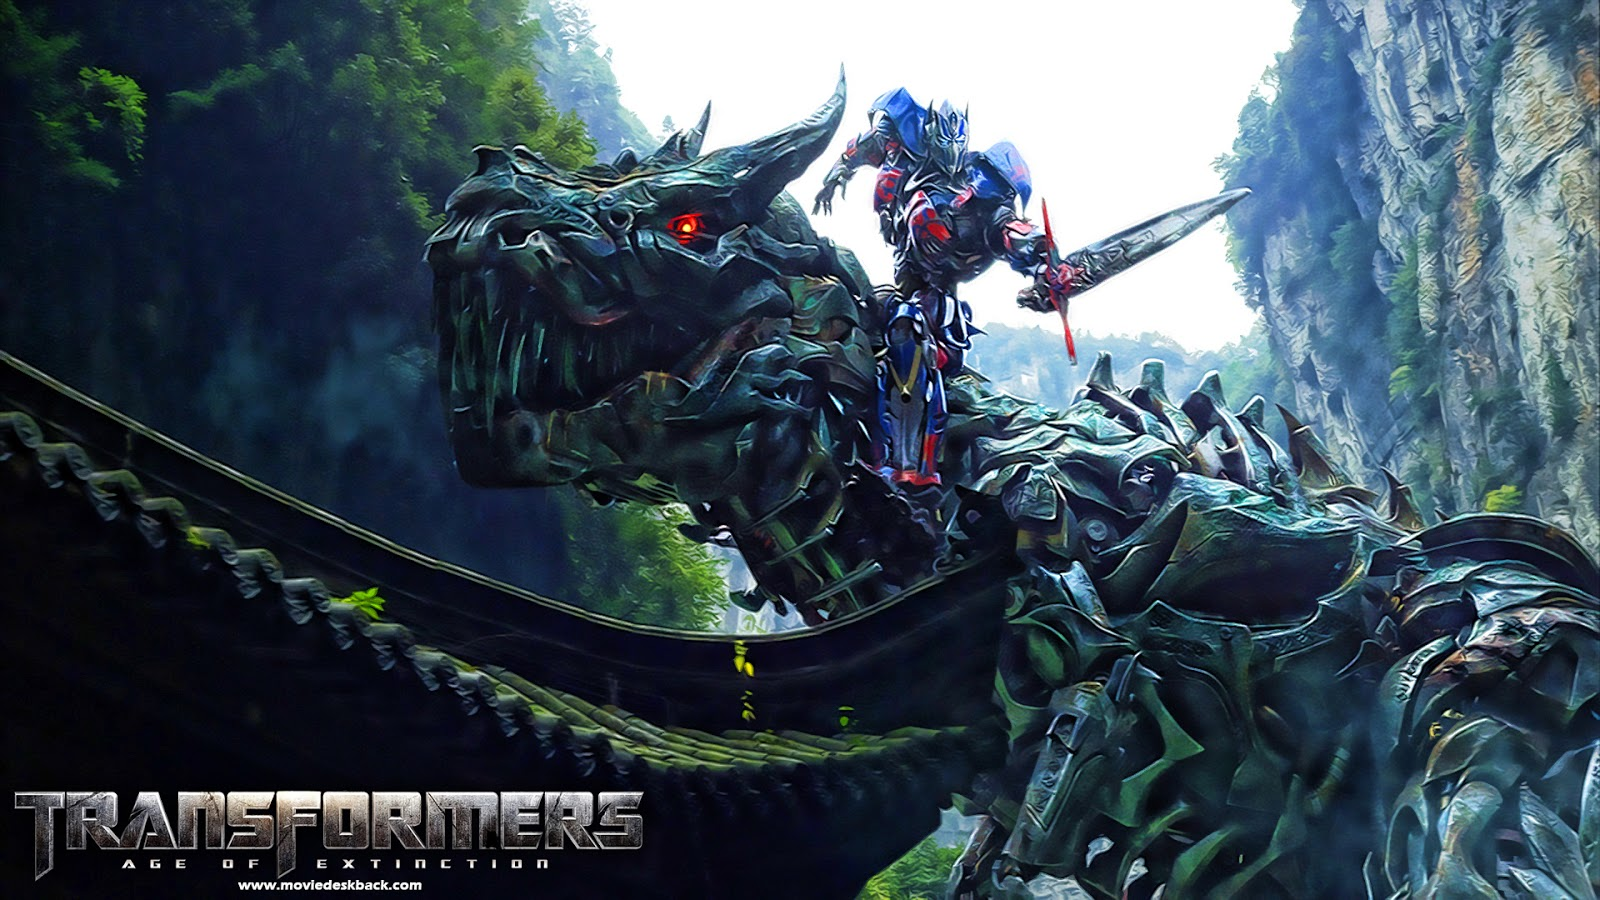 Download Transformers: Age of Extinction (2014) BluRay 720p Subtitle Indonesia